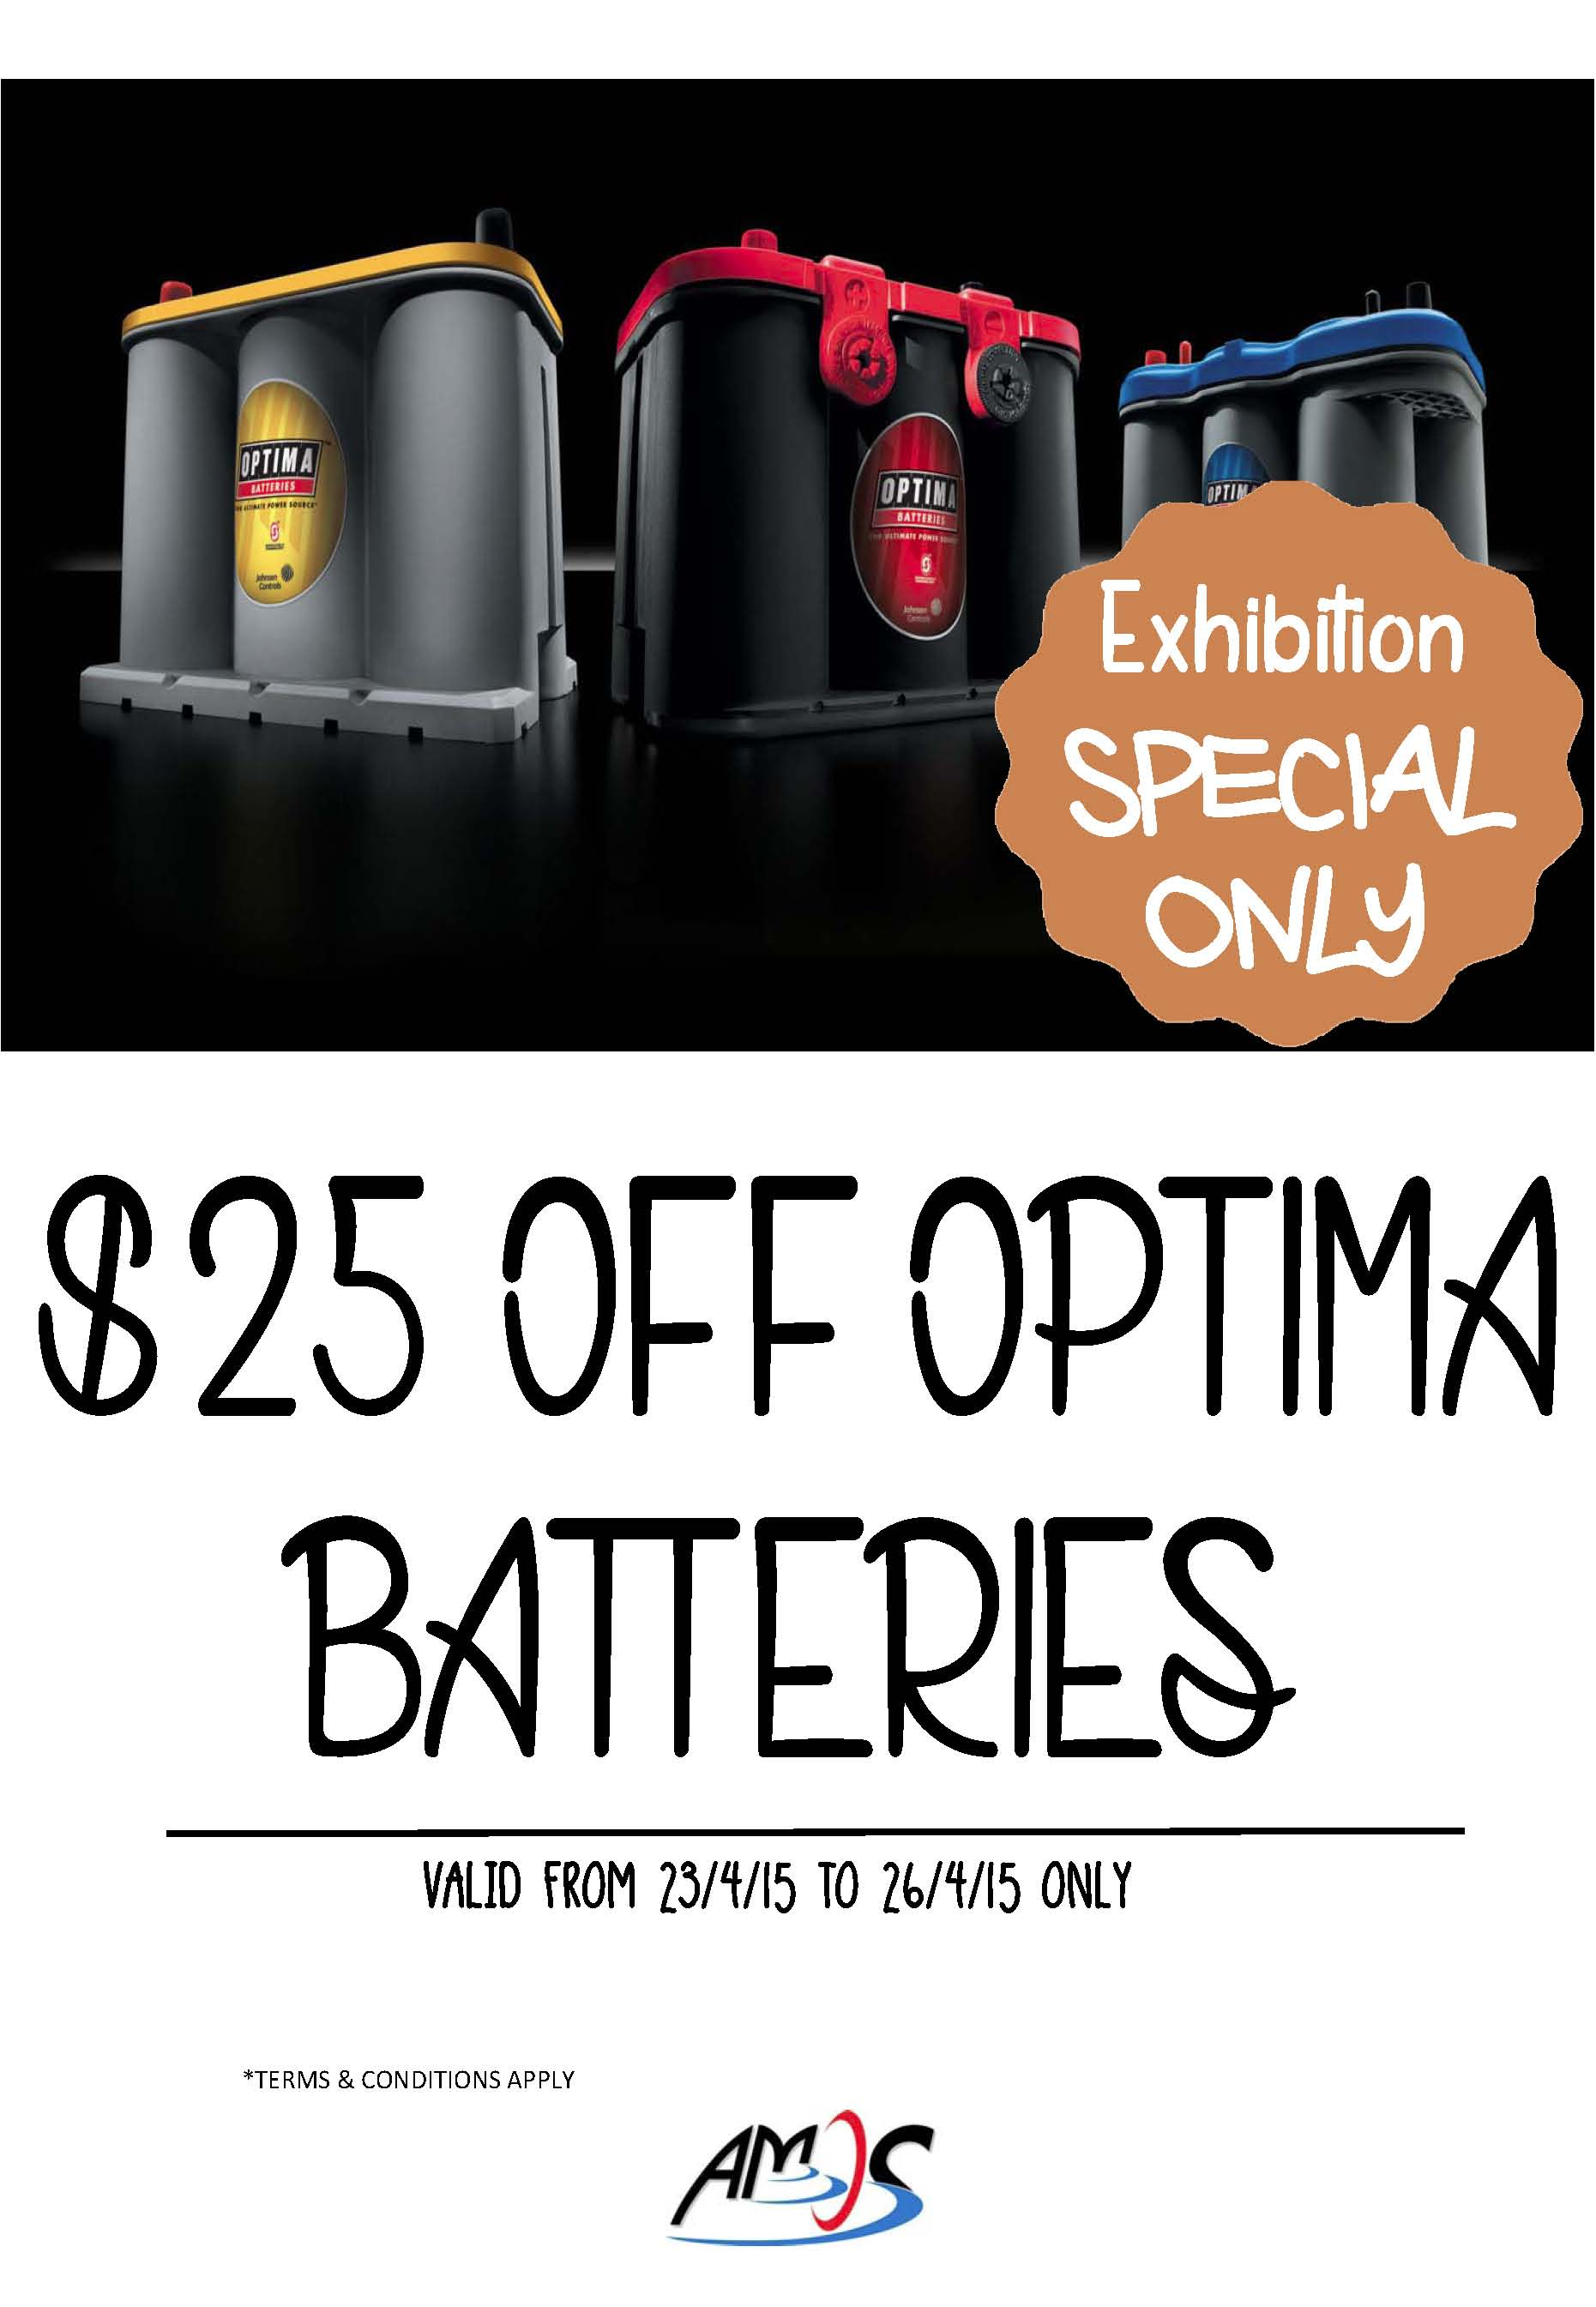 Optima batteries promotion for SYS